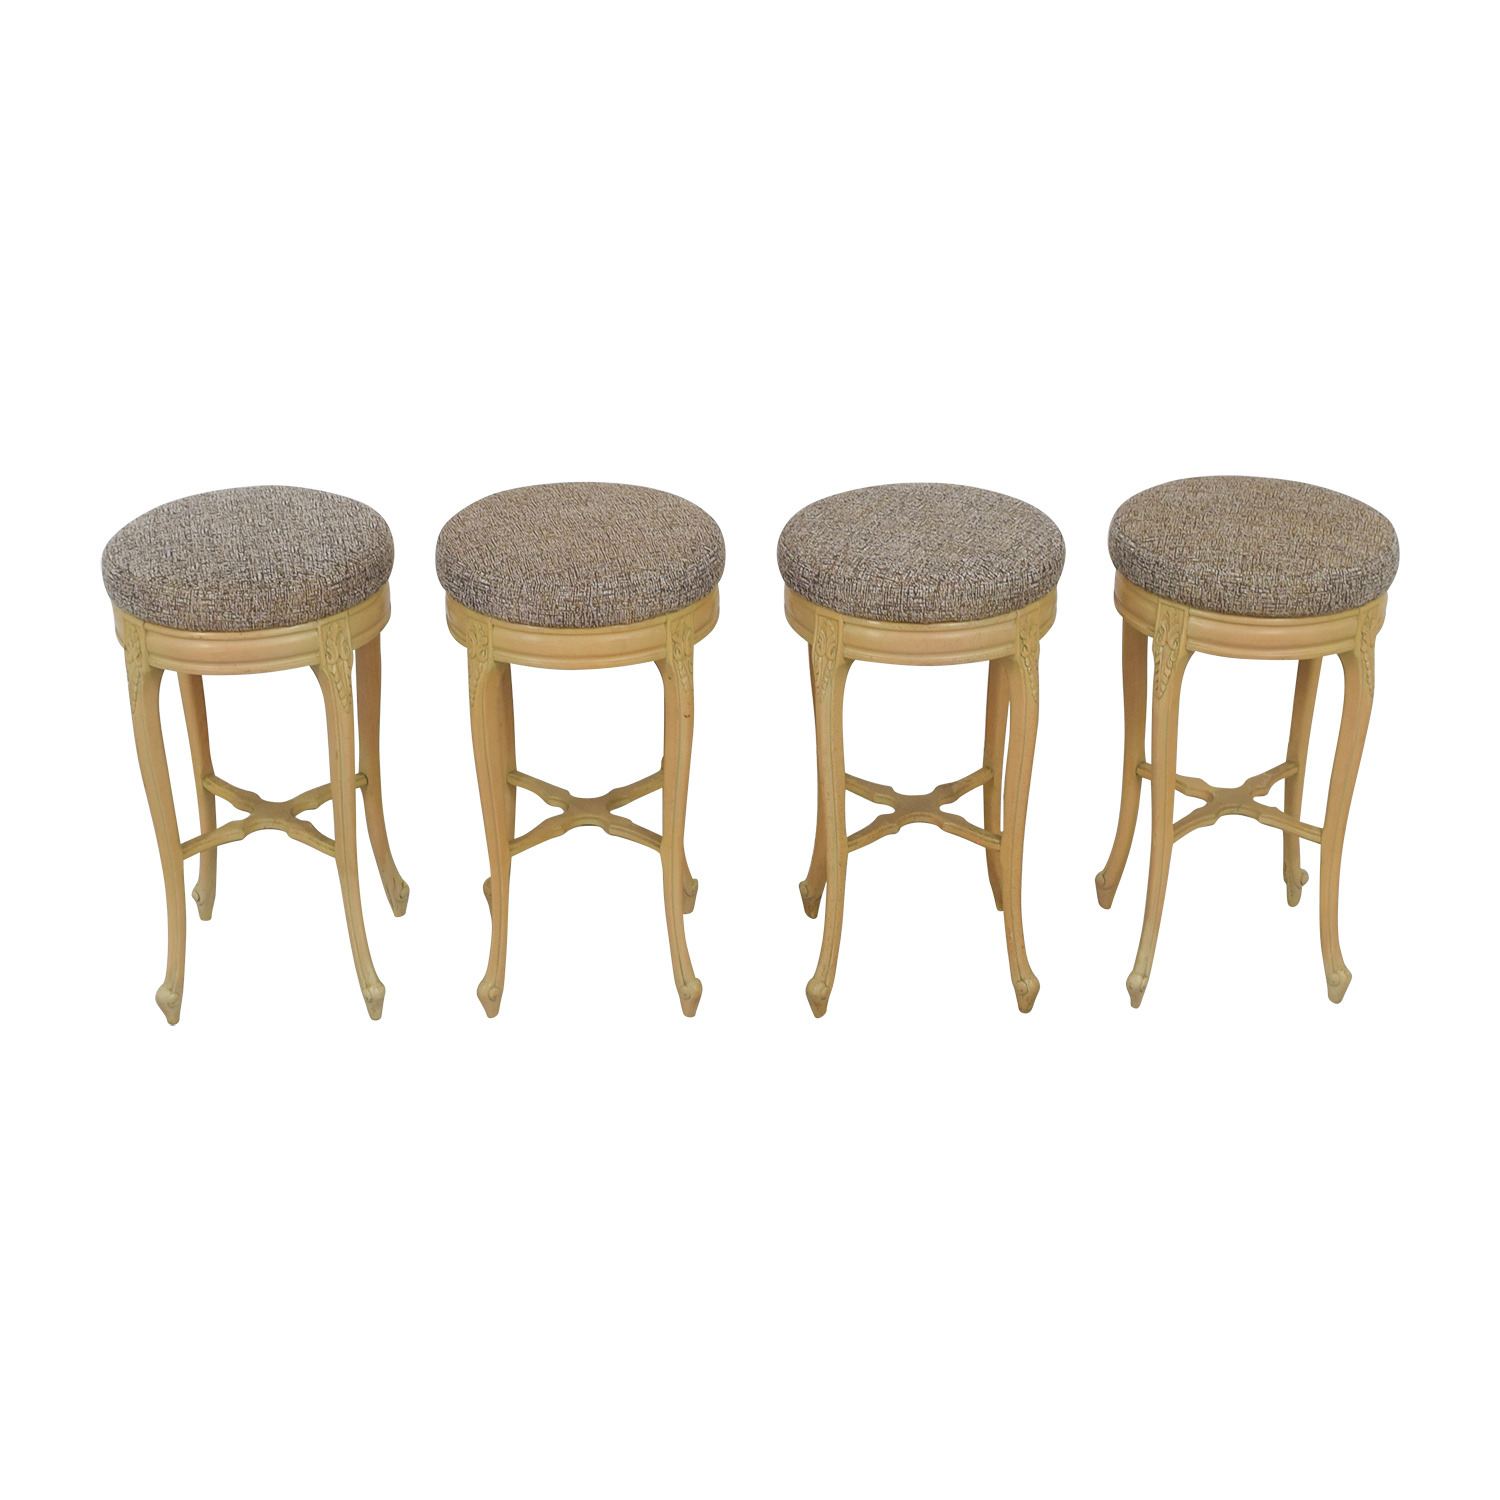 shop Furniture Masters Barstools Furniture Masters Sofas